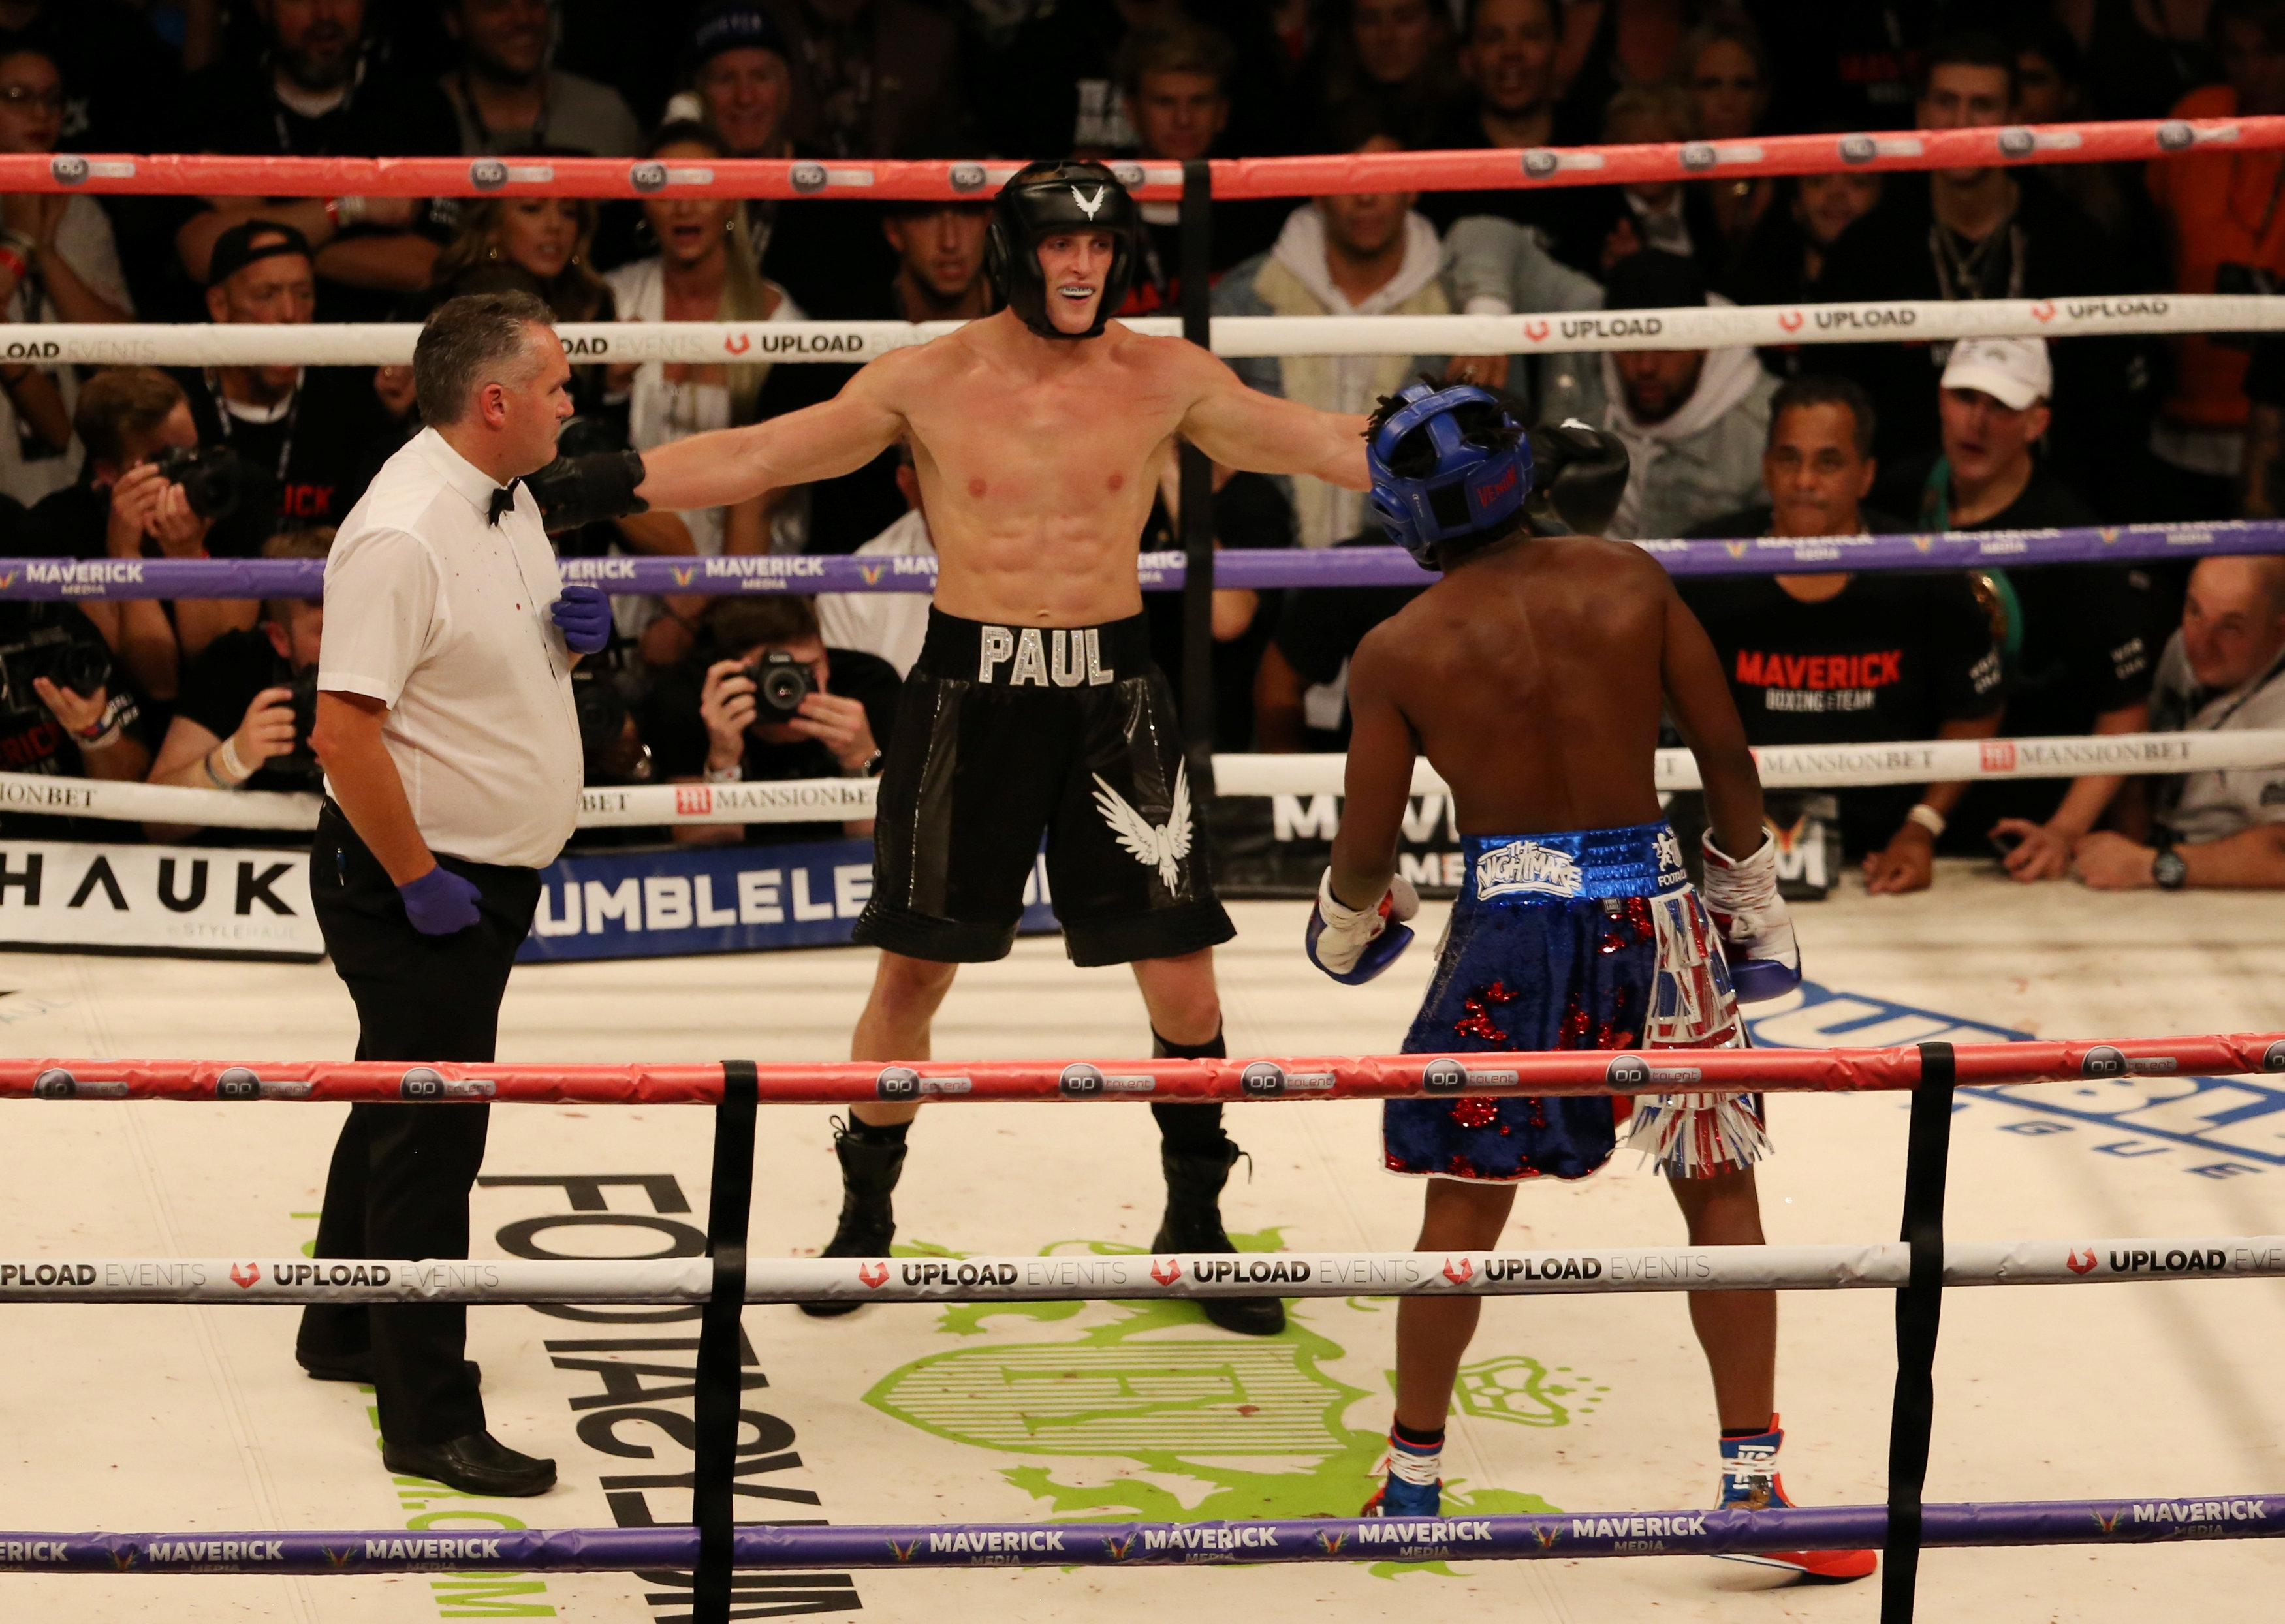 Logan Paul dominated KSI but the bout was scored a draw